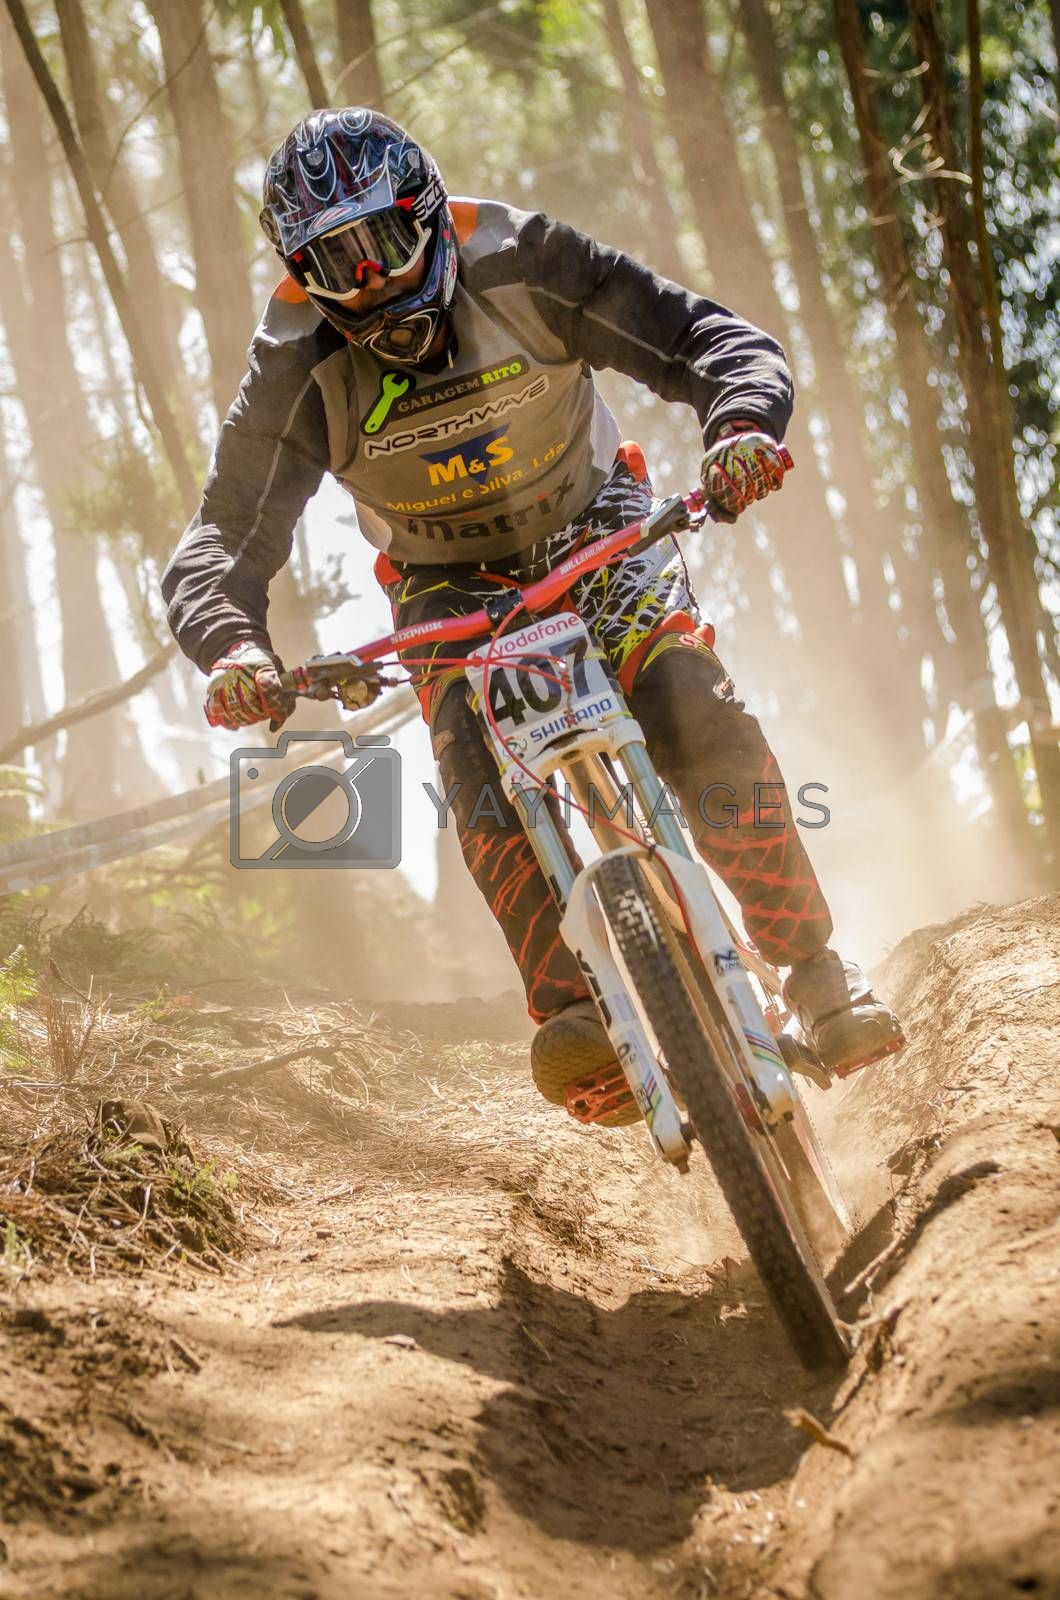 GOIS, PORTUGAL - JUNE 23: Jose Reis during the 4th Stage of the Taca de Portugal Downhill Vodafone on june 23, 2013 in Gois, Portugal.